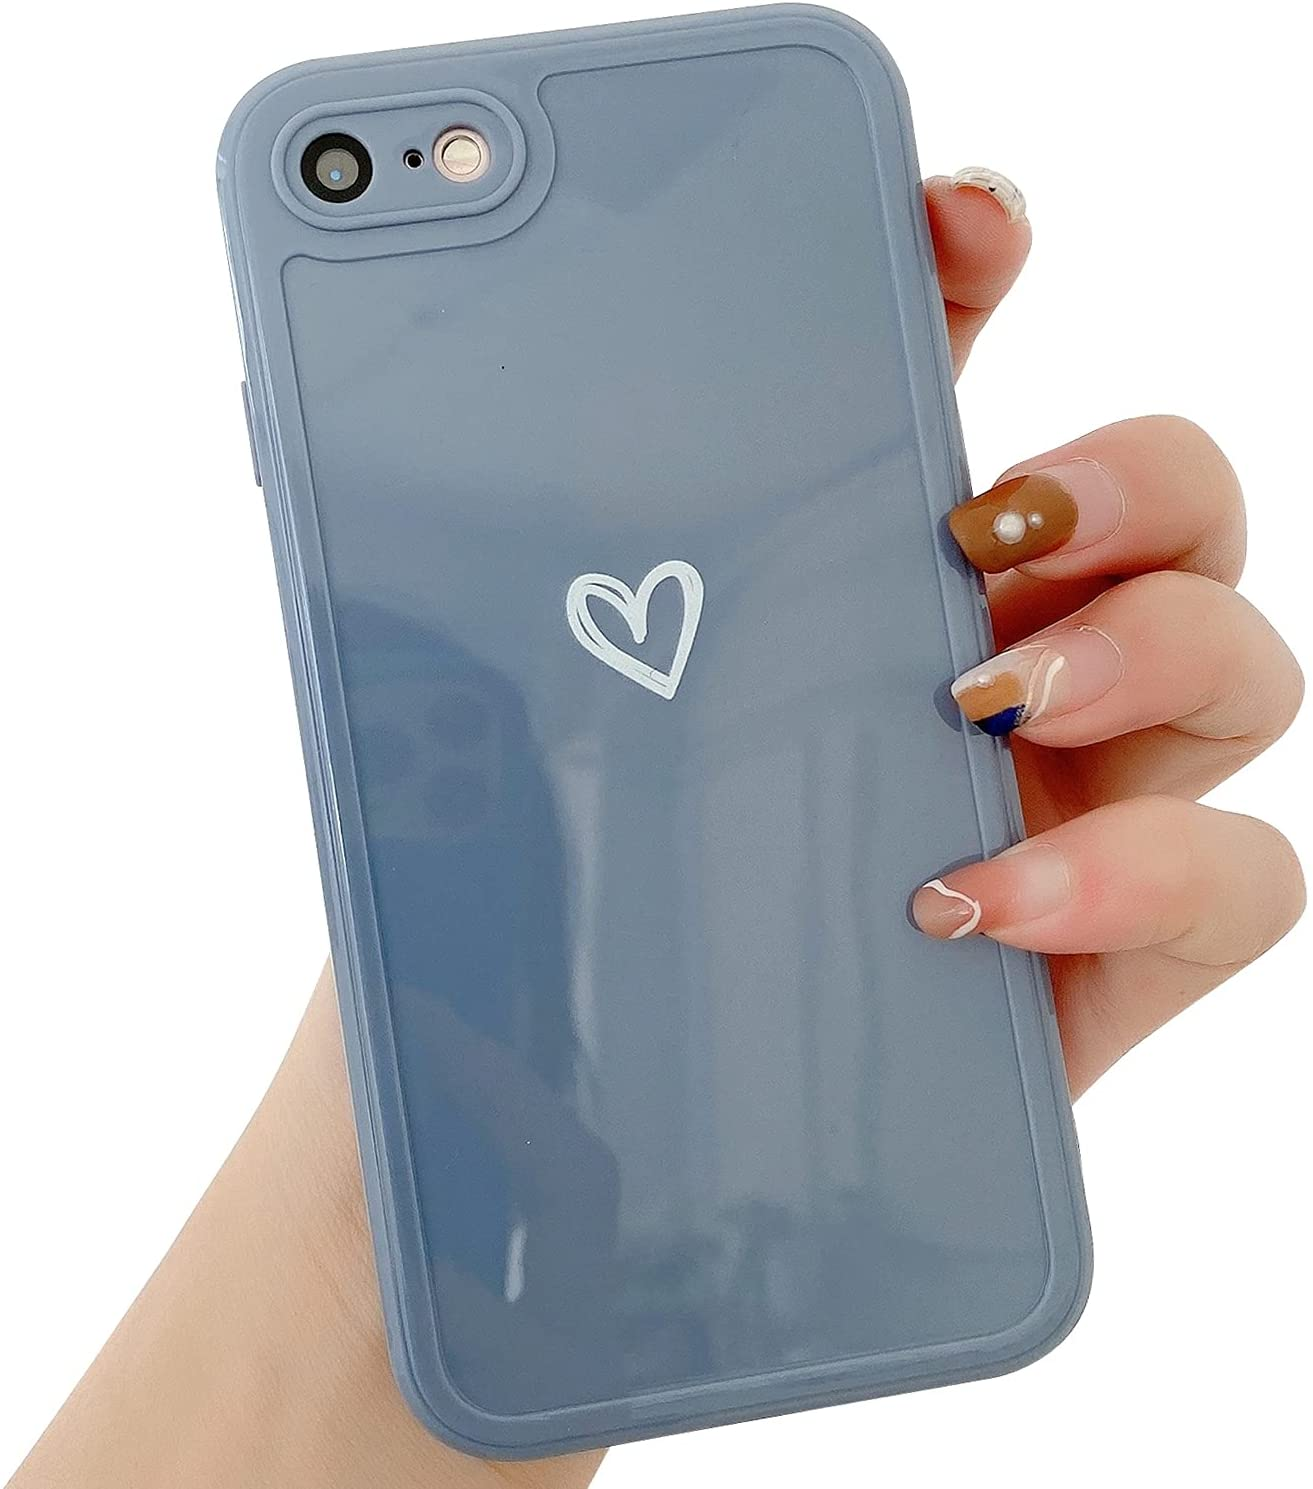 """Compatible with iPhone 7/8/SE 2020 Case for Women Girls, Cute Love Heart Pattern Soft Slim TPU Protective Bumper Phone Case for iPhone 7/8/SE 2020 4.7""""-Blue Gray"""